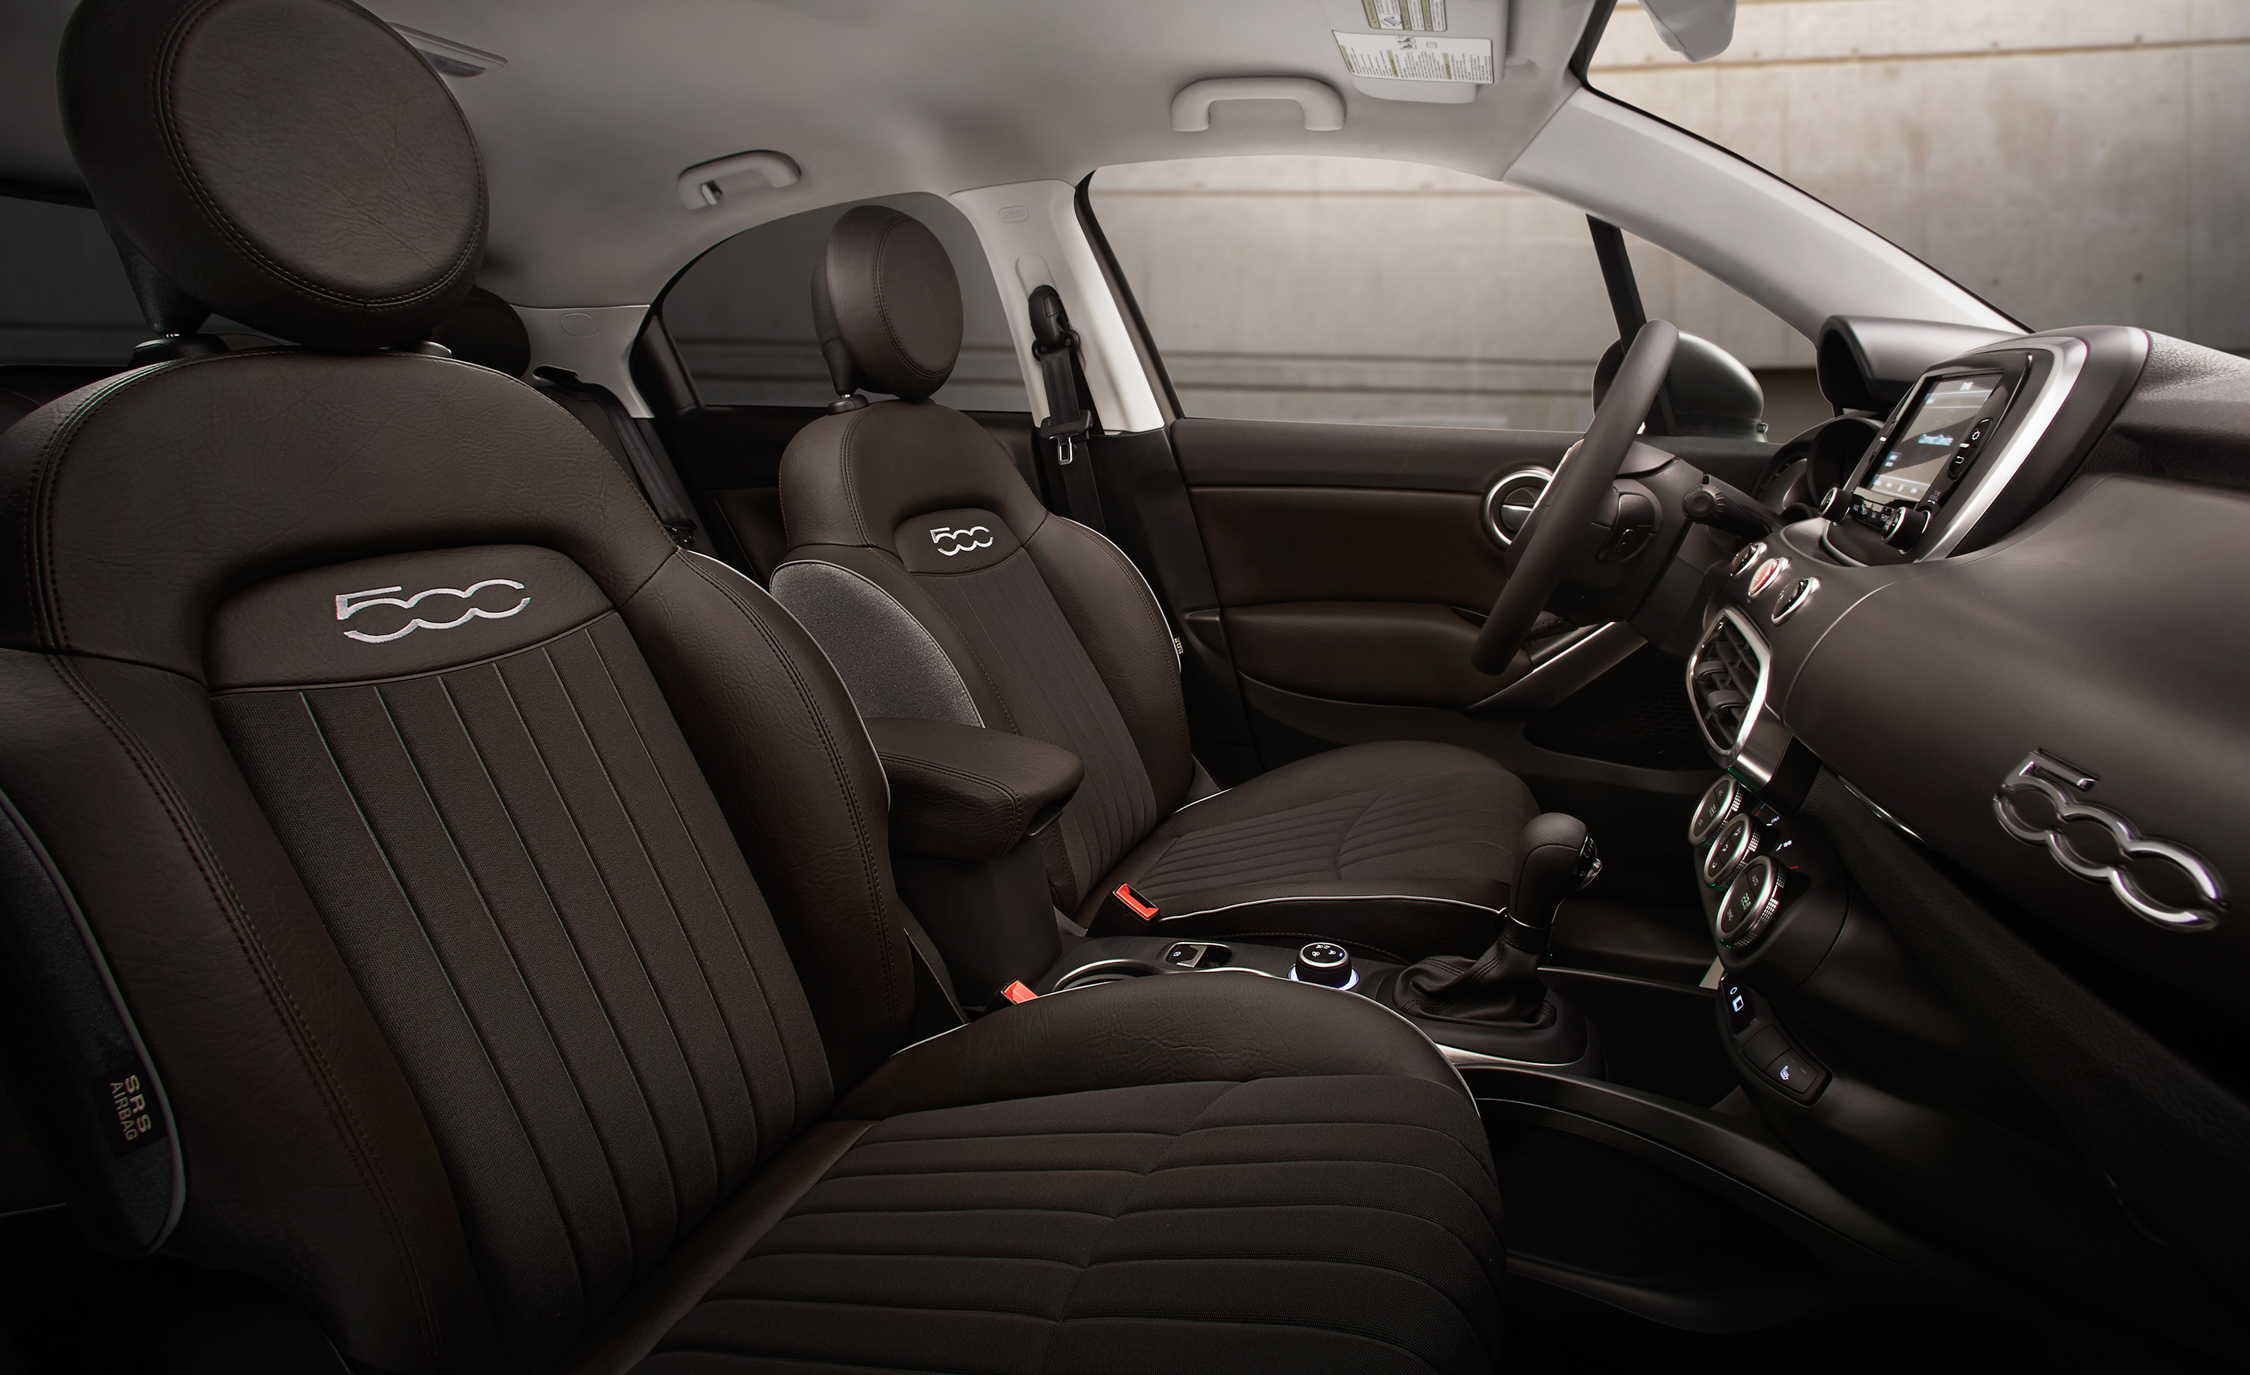 2016 Fiat 500X Lounge Interior Front Seats